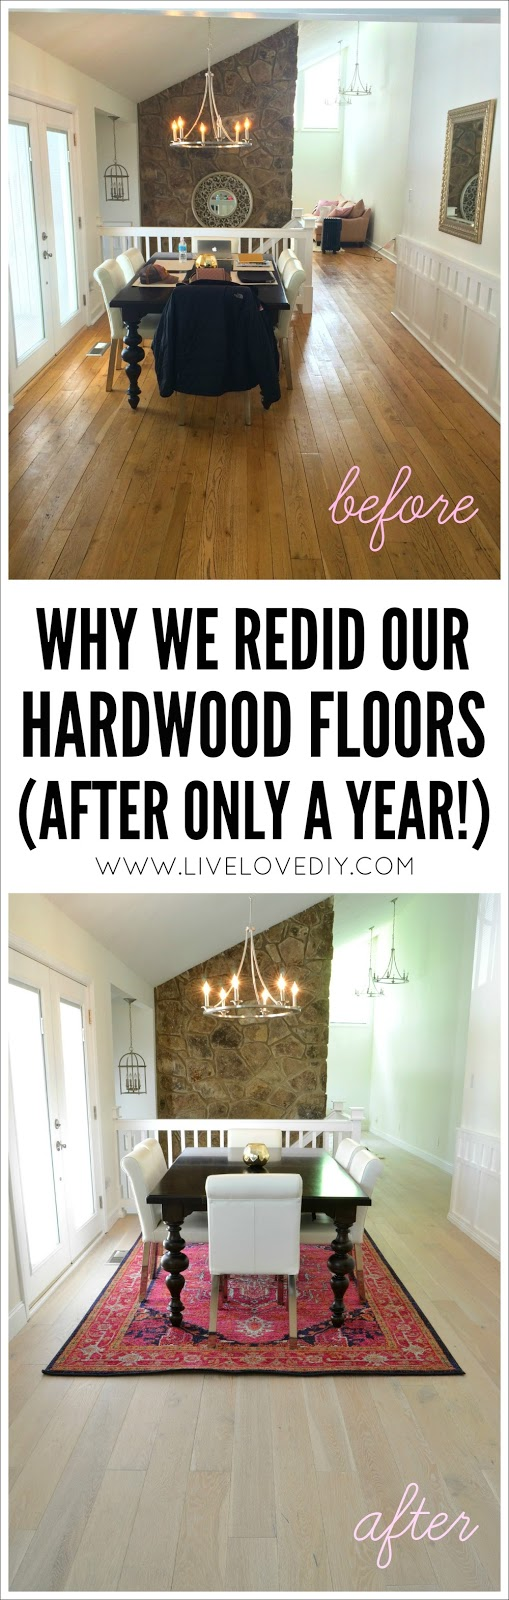 Our new white washed hardwood flooring (and why we had to rip out the old ones after only a year!). Great cautionary tale about how to find a good contractor when renovating your house!